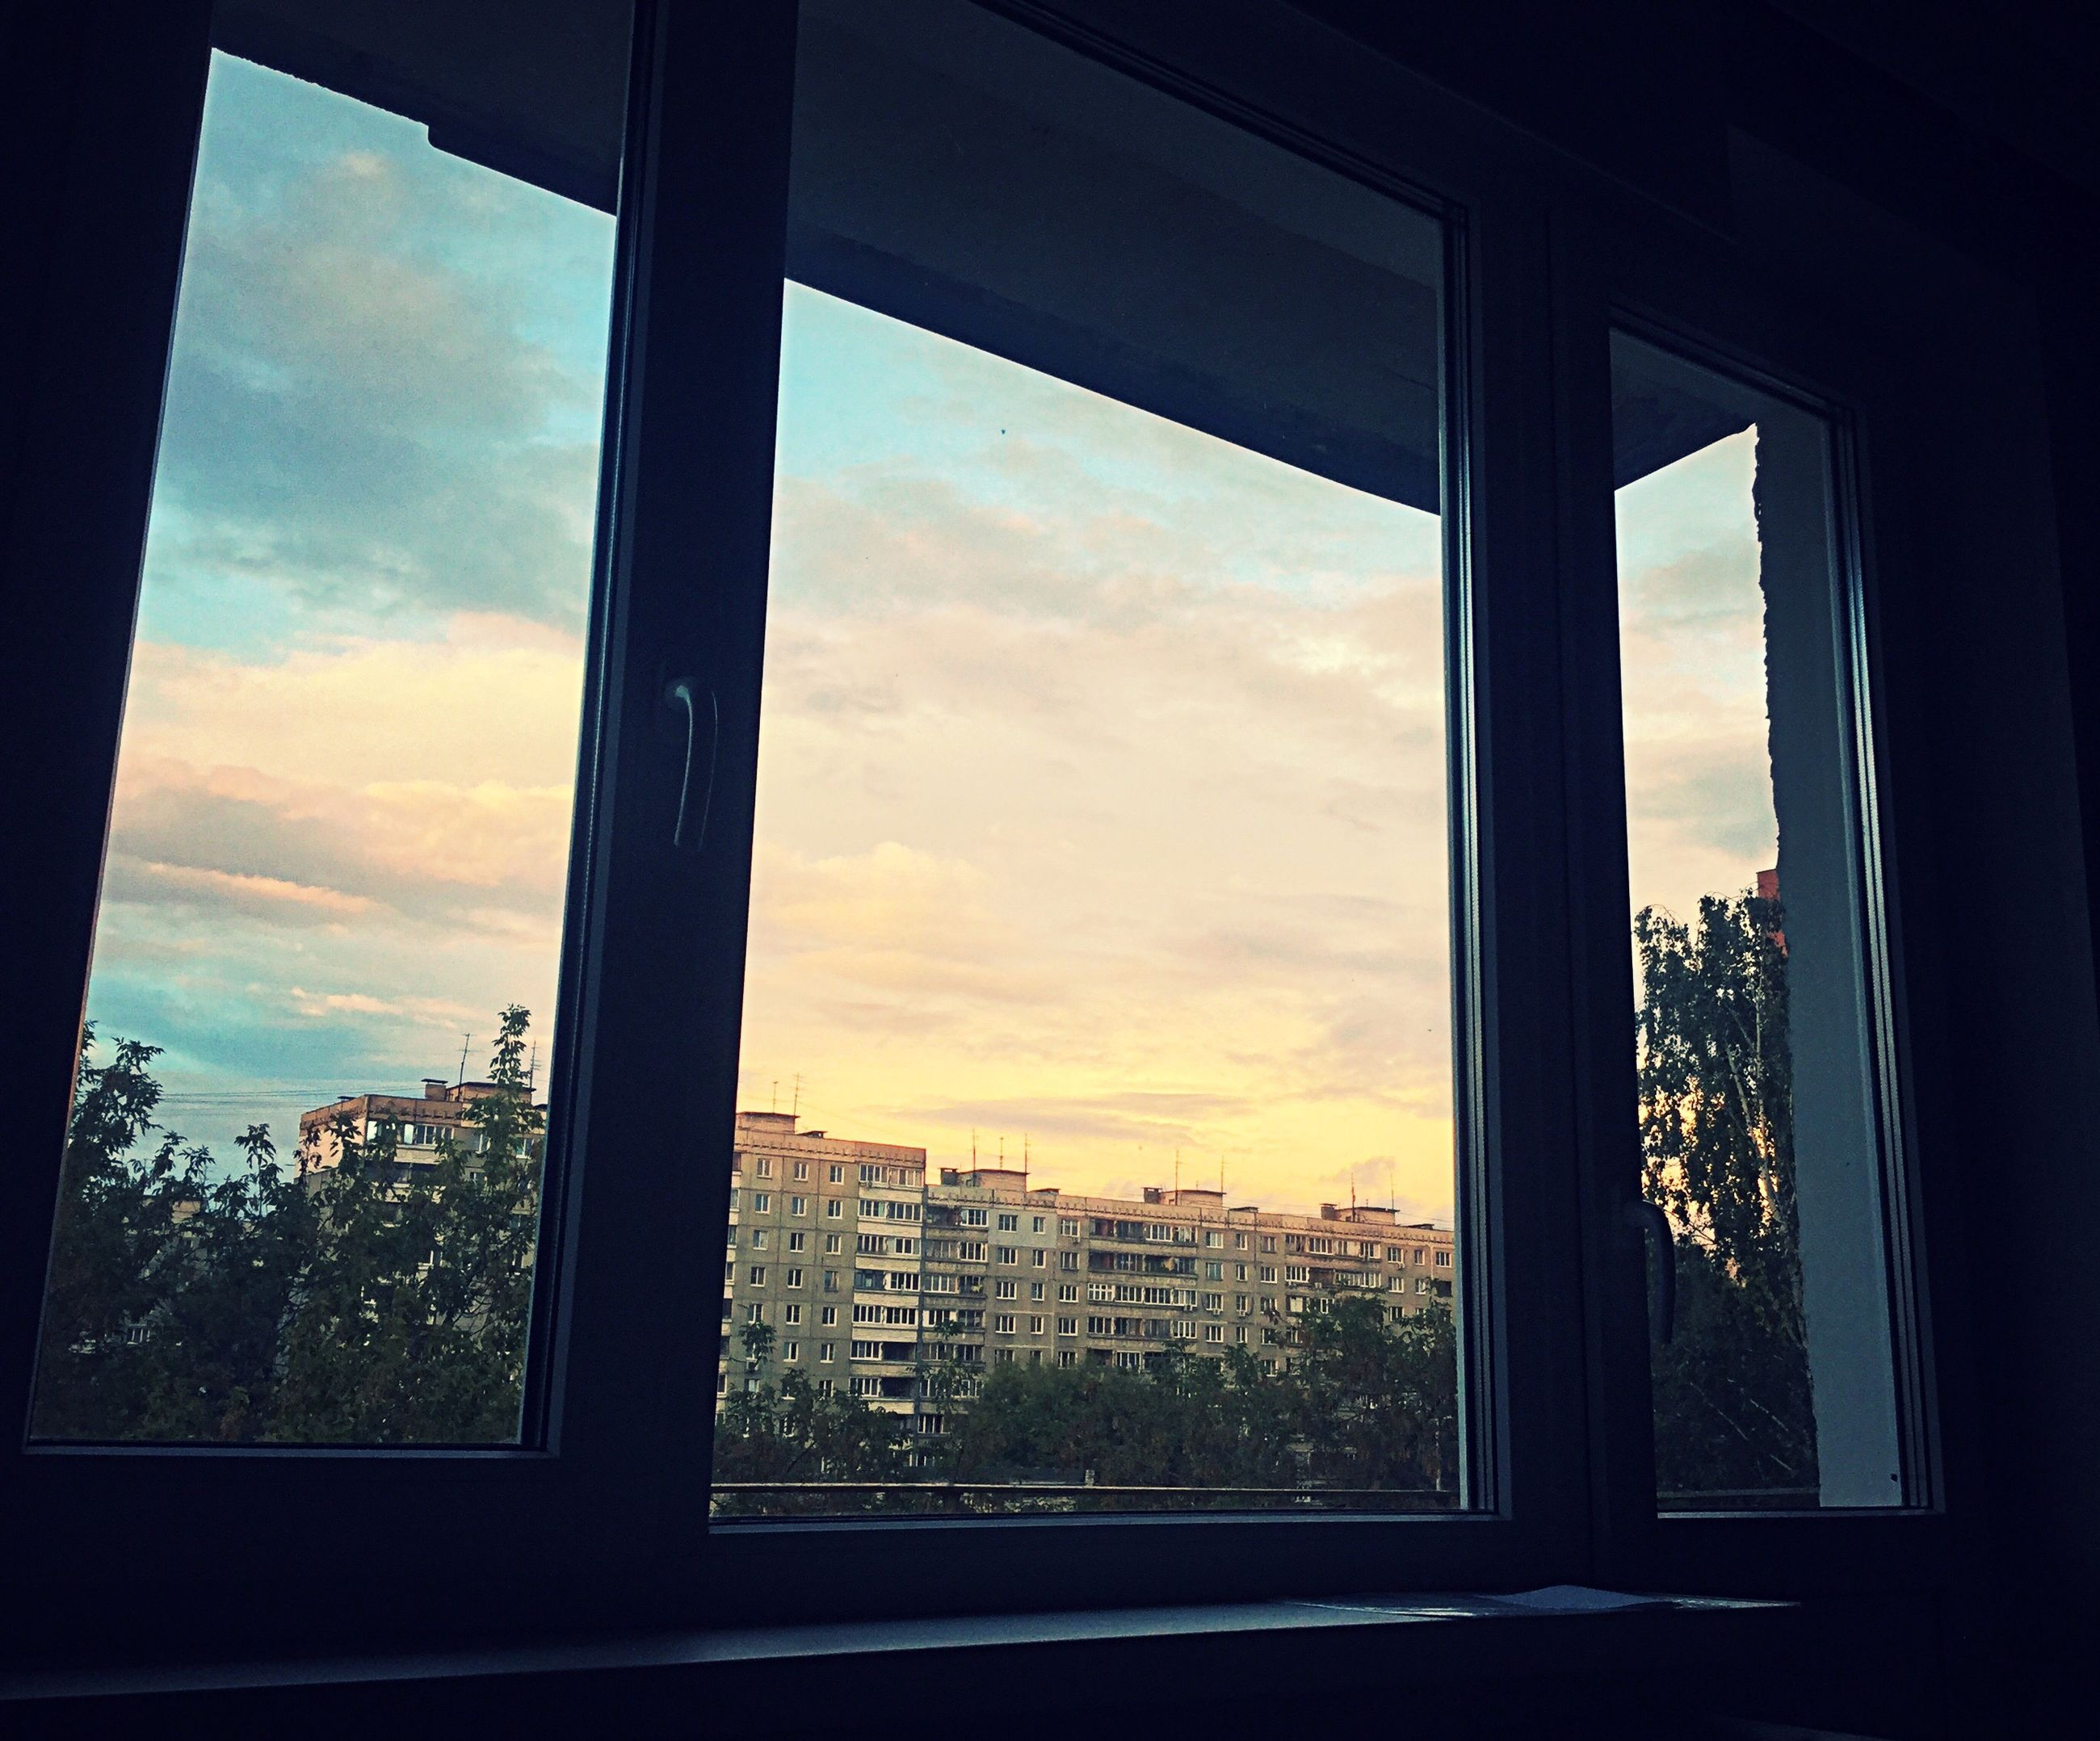 window, indoors, architecture, built structure, home interior, city, sunset, cityscape, transparent, glass - material, sky, building exterior, urban skyline, geometric shape, cloud - sky, no people, window frame, darkness, architectural column, development, tall